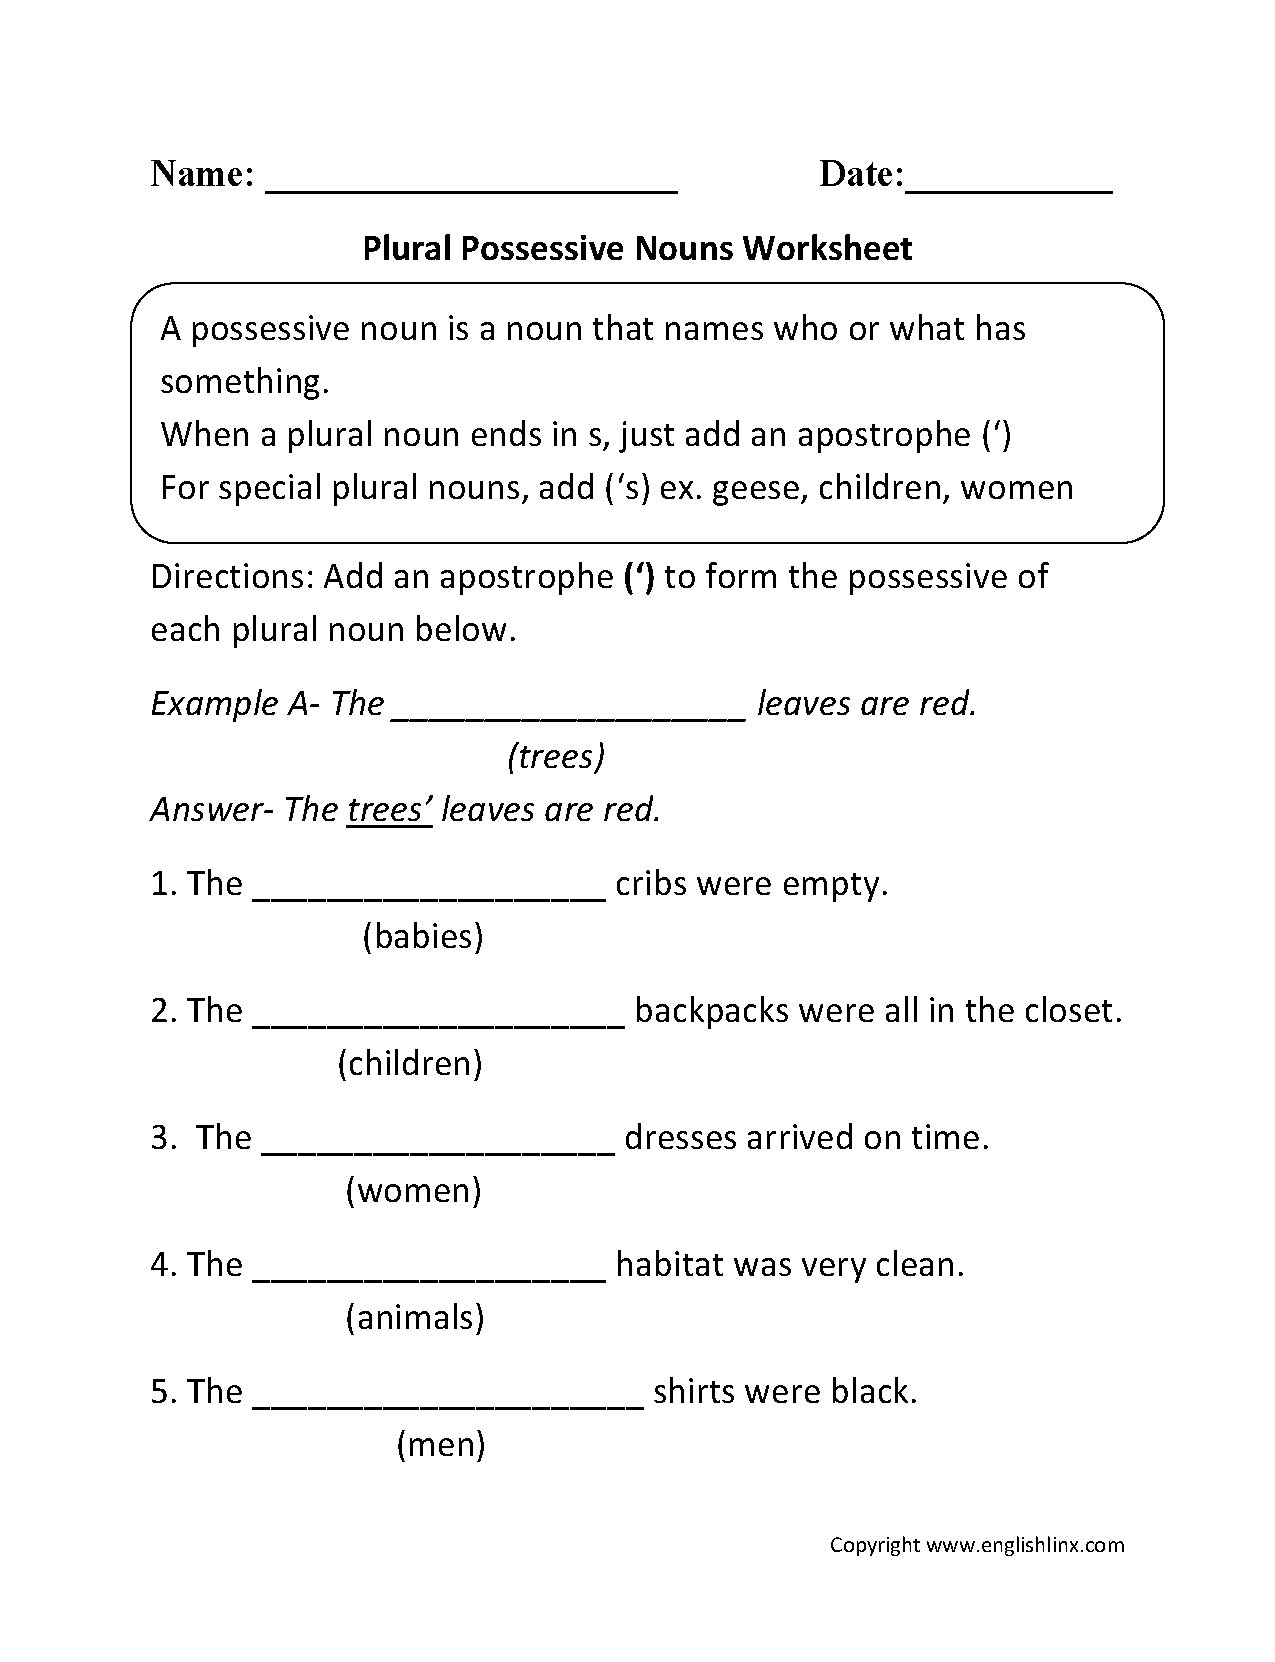 Aldiablosus  Winsome Nouns Worksheets  Possessive Nouns Worksheets With Remarkable Possessive Nouns Worksheets With Beauteous Cursive Name Worksheets Also Worksheets For Esl Students In Addition Multiply And Divide Monomials Worksheet And Radical Operations Worksheet As Well As Algebra  Solving Equations Worksheet Additionally Law Of Multiple Proportions Worksheet From Englishlinxcom With Aldiablosus  Remarkable Nouns Worksheets  Possessive Nouns Worksheets With Beauteous Possessive Nouns Worksheets And Winsome Cursive Name Worksheets Also Worksheets For Esl Students In Addition Multiply And Divide Monomials Worksheet From Englishlinxcom